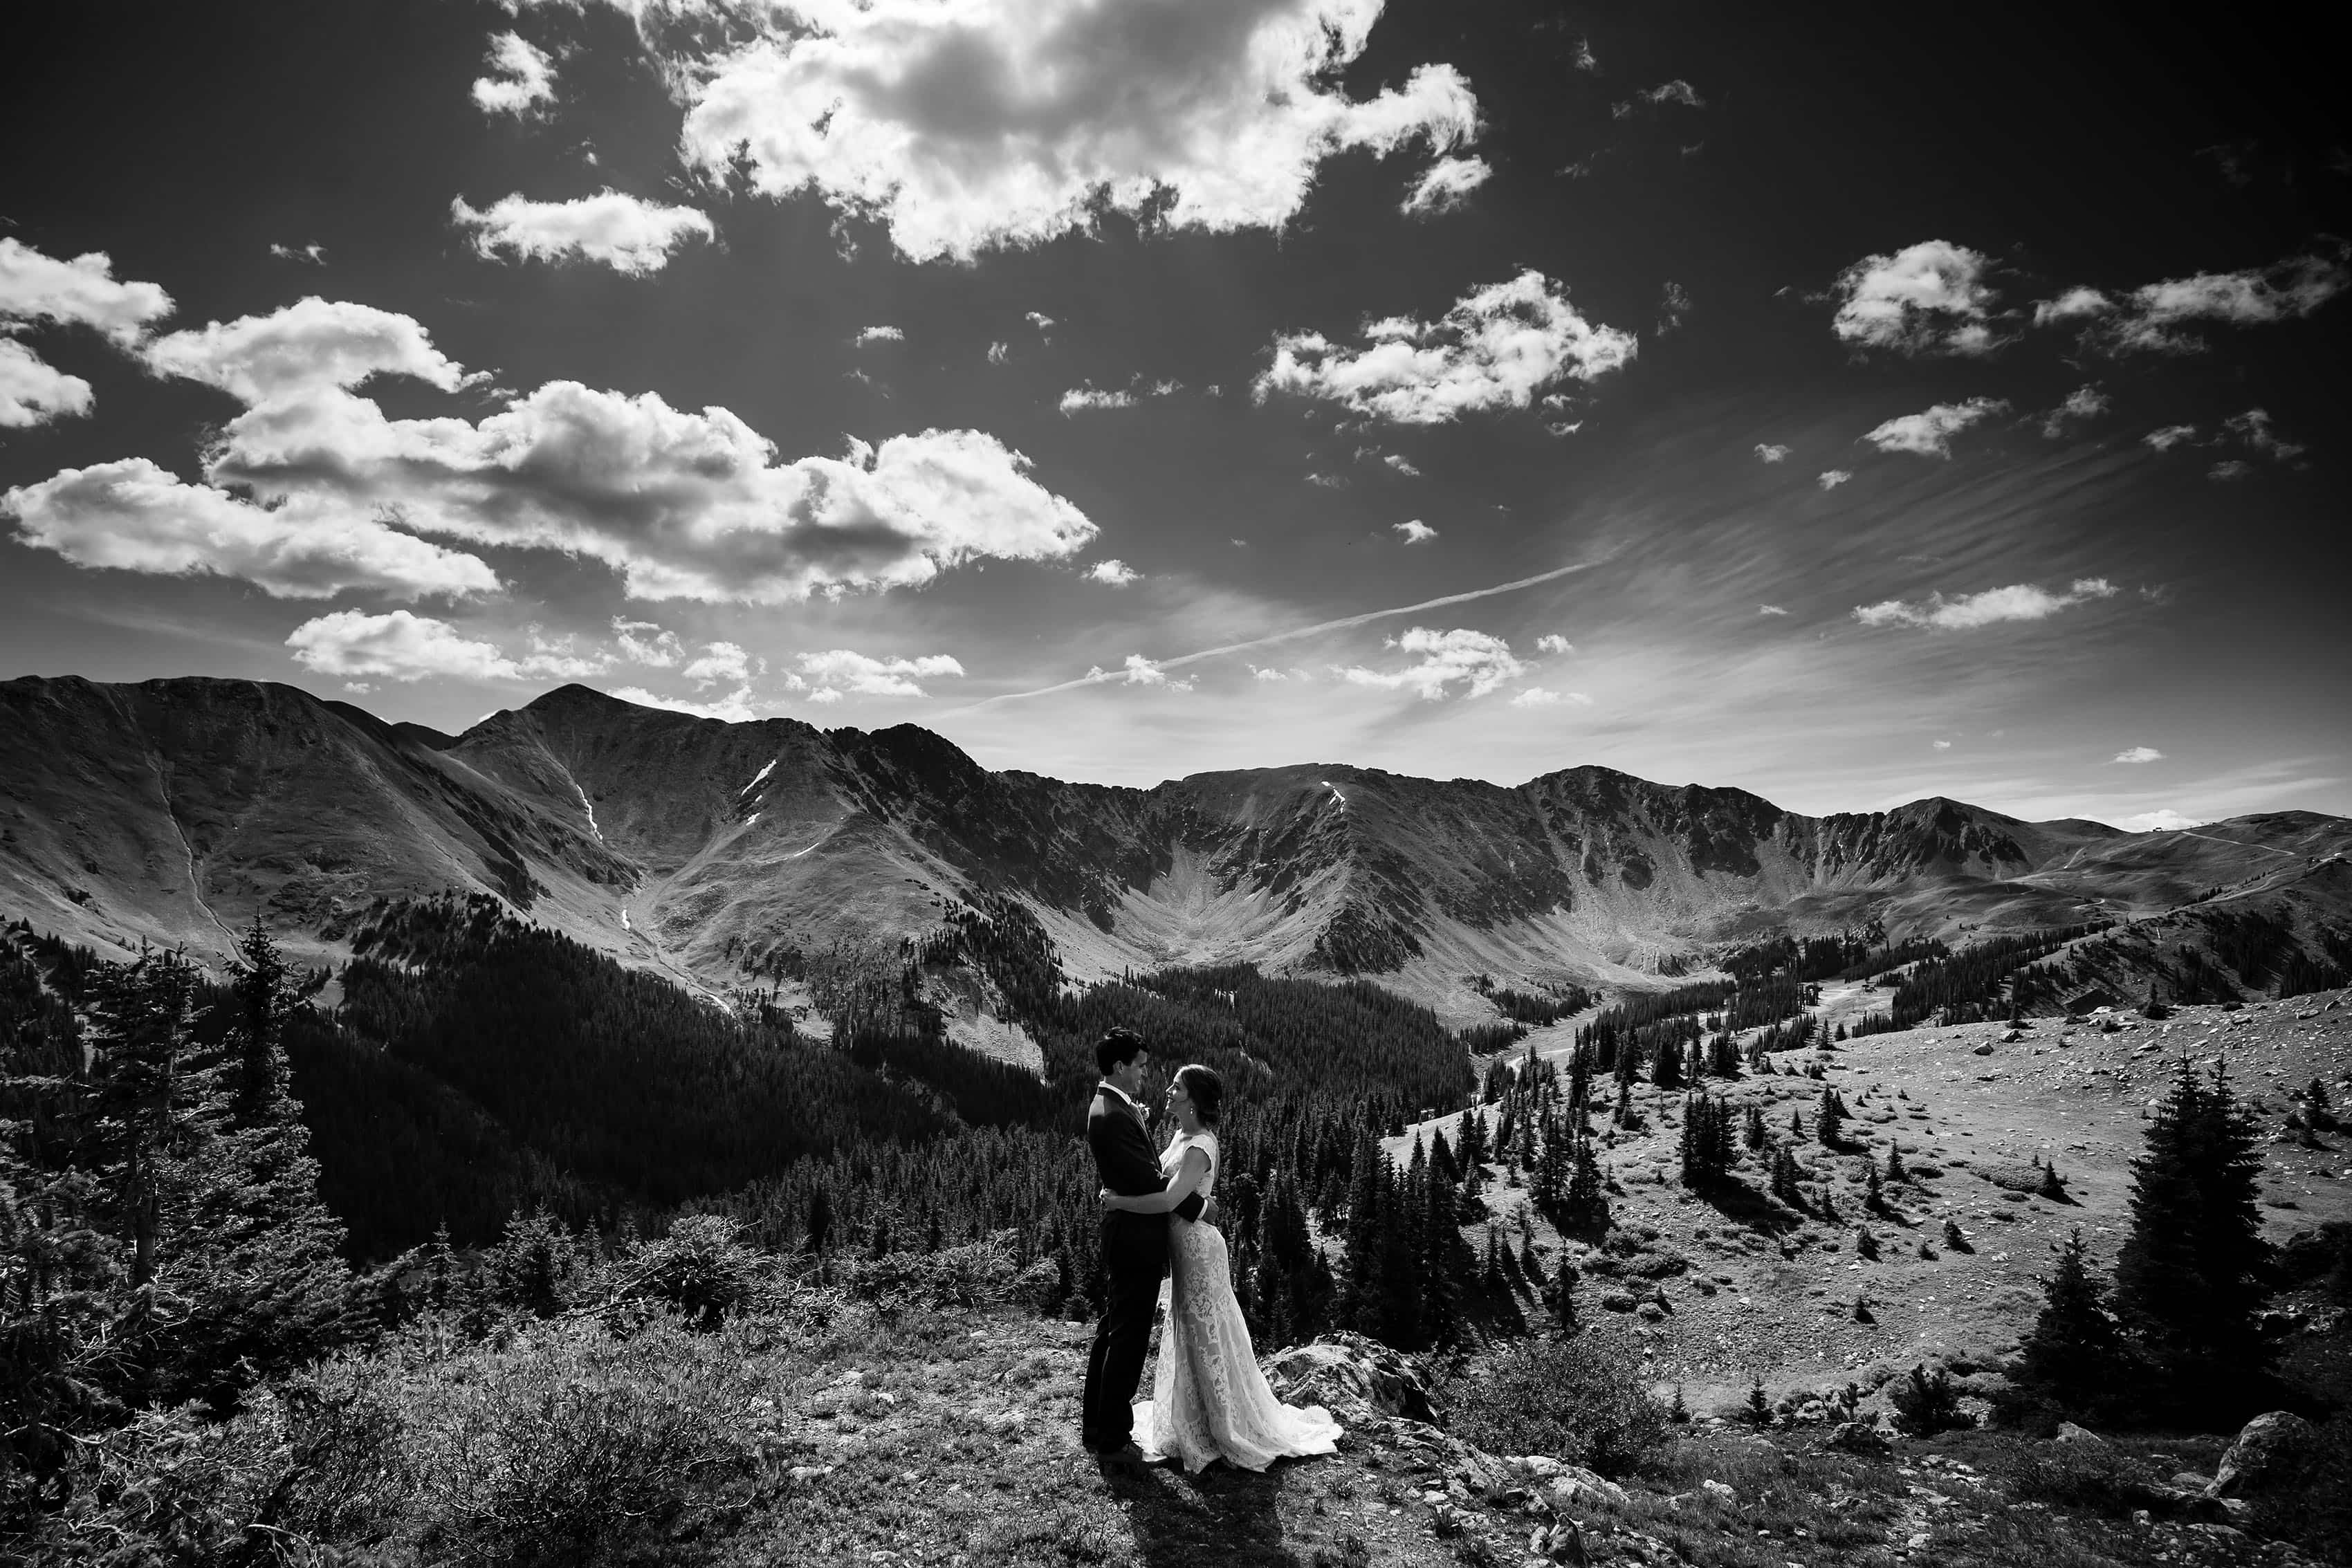 The bride and groom share a moment together atop Loveland Pass near Keystone, Colorado